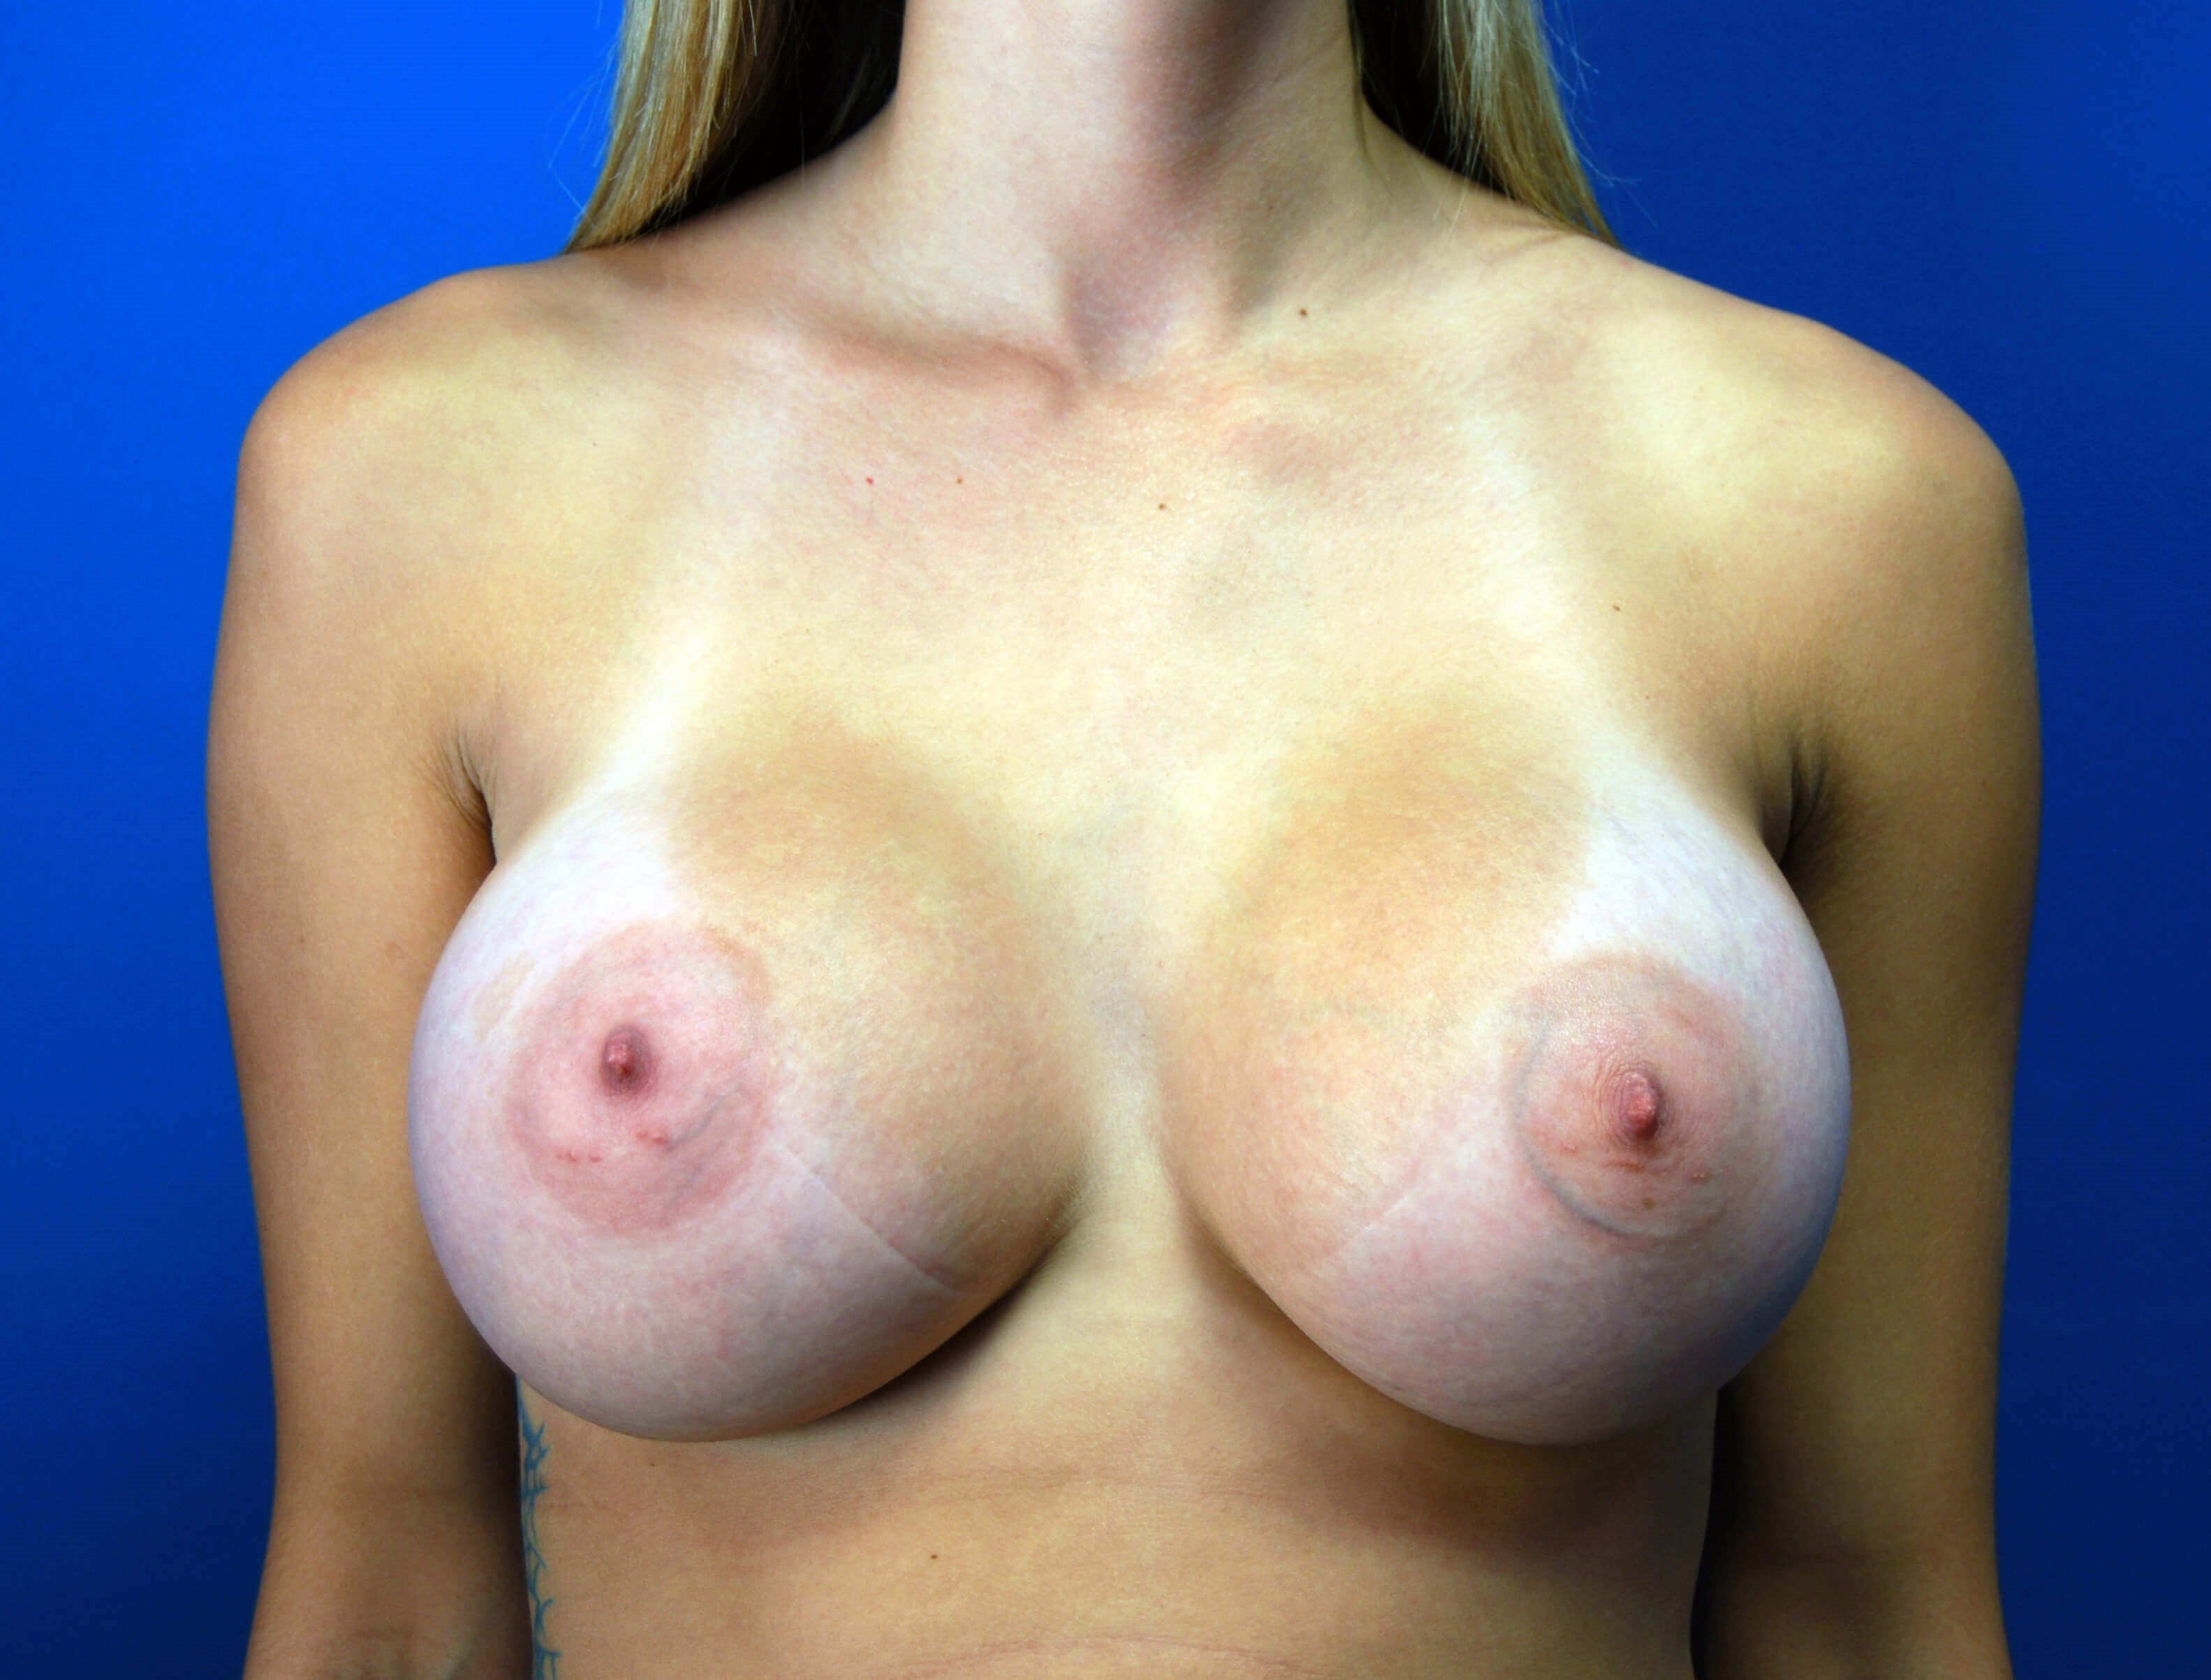 Front View After 375cc Implants